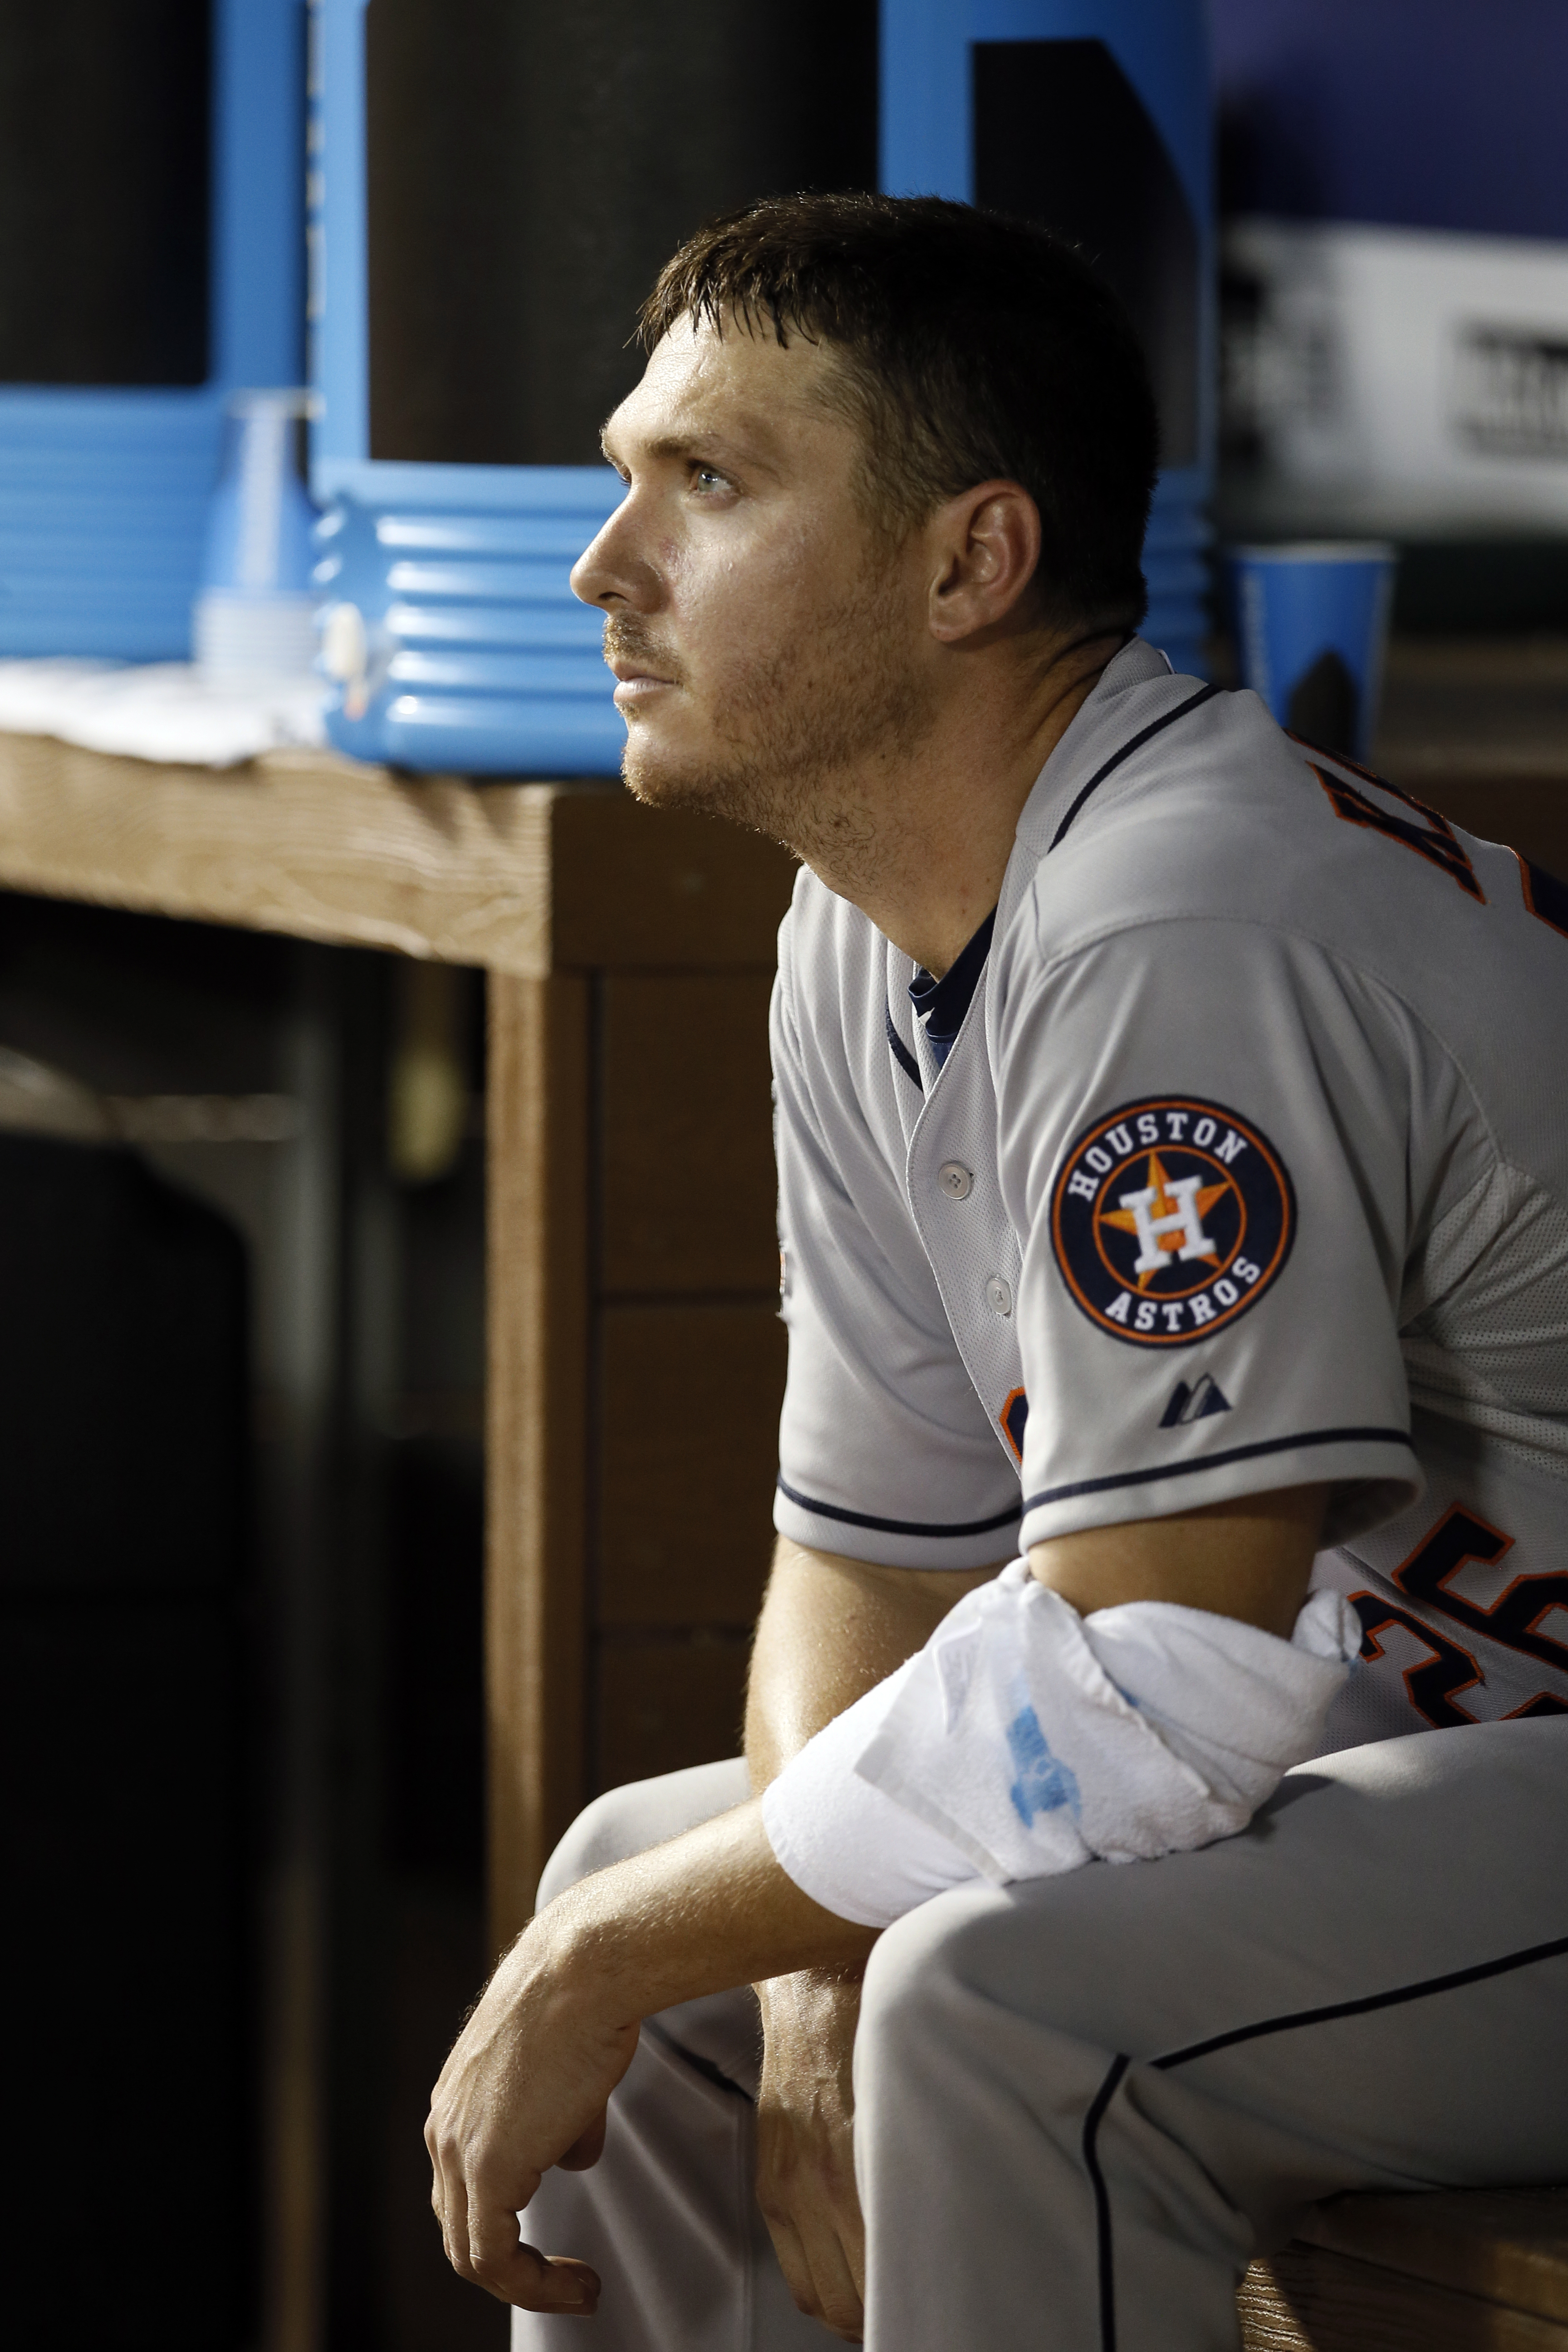 Houston Astros starting pitcher Scott Kazmir sits in the dugout with his arm wrapped in the sixth inning of a baseball game against the Texas Rangers, Wednesday Aug. 5, 2015, in Arlington, Texas. (AP Photo/Tony Gutierrez)